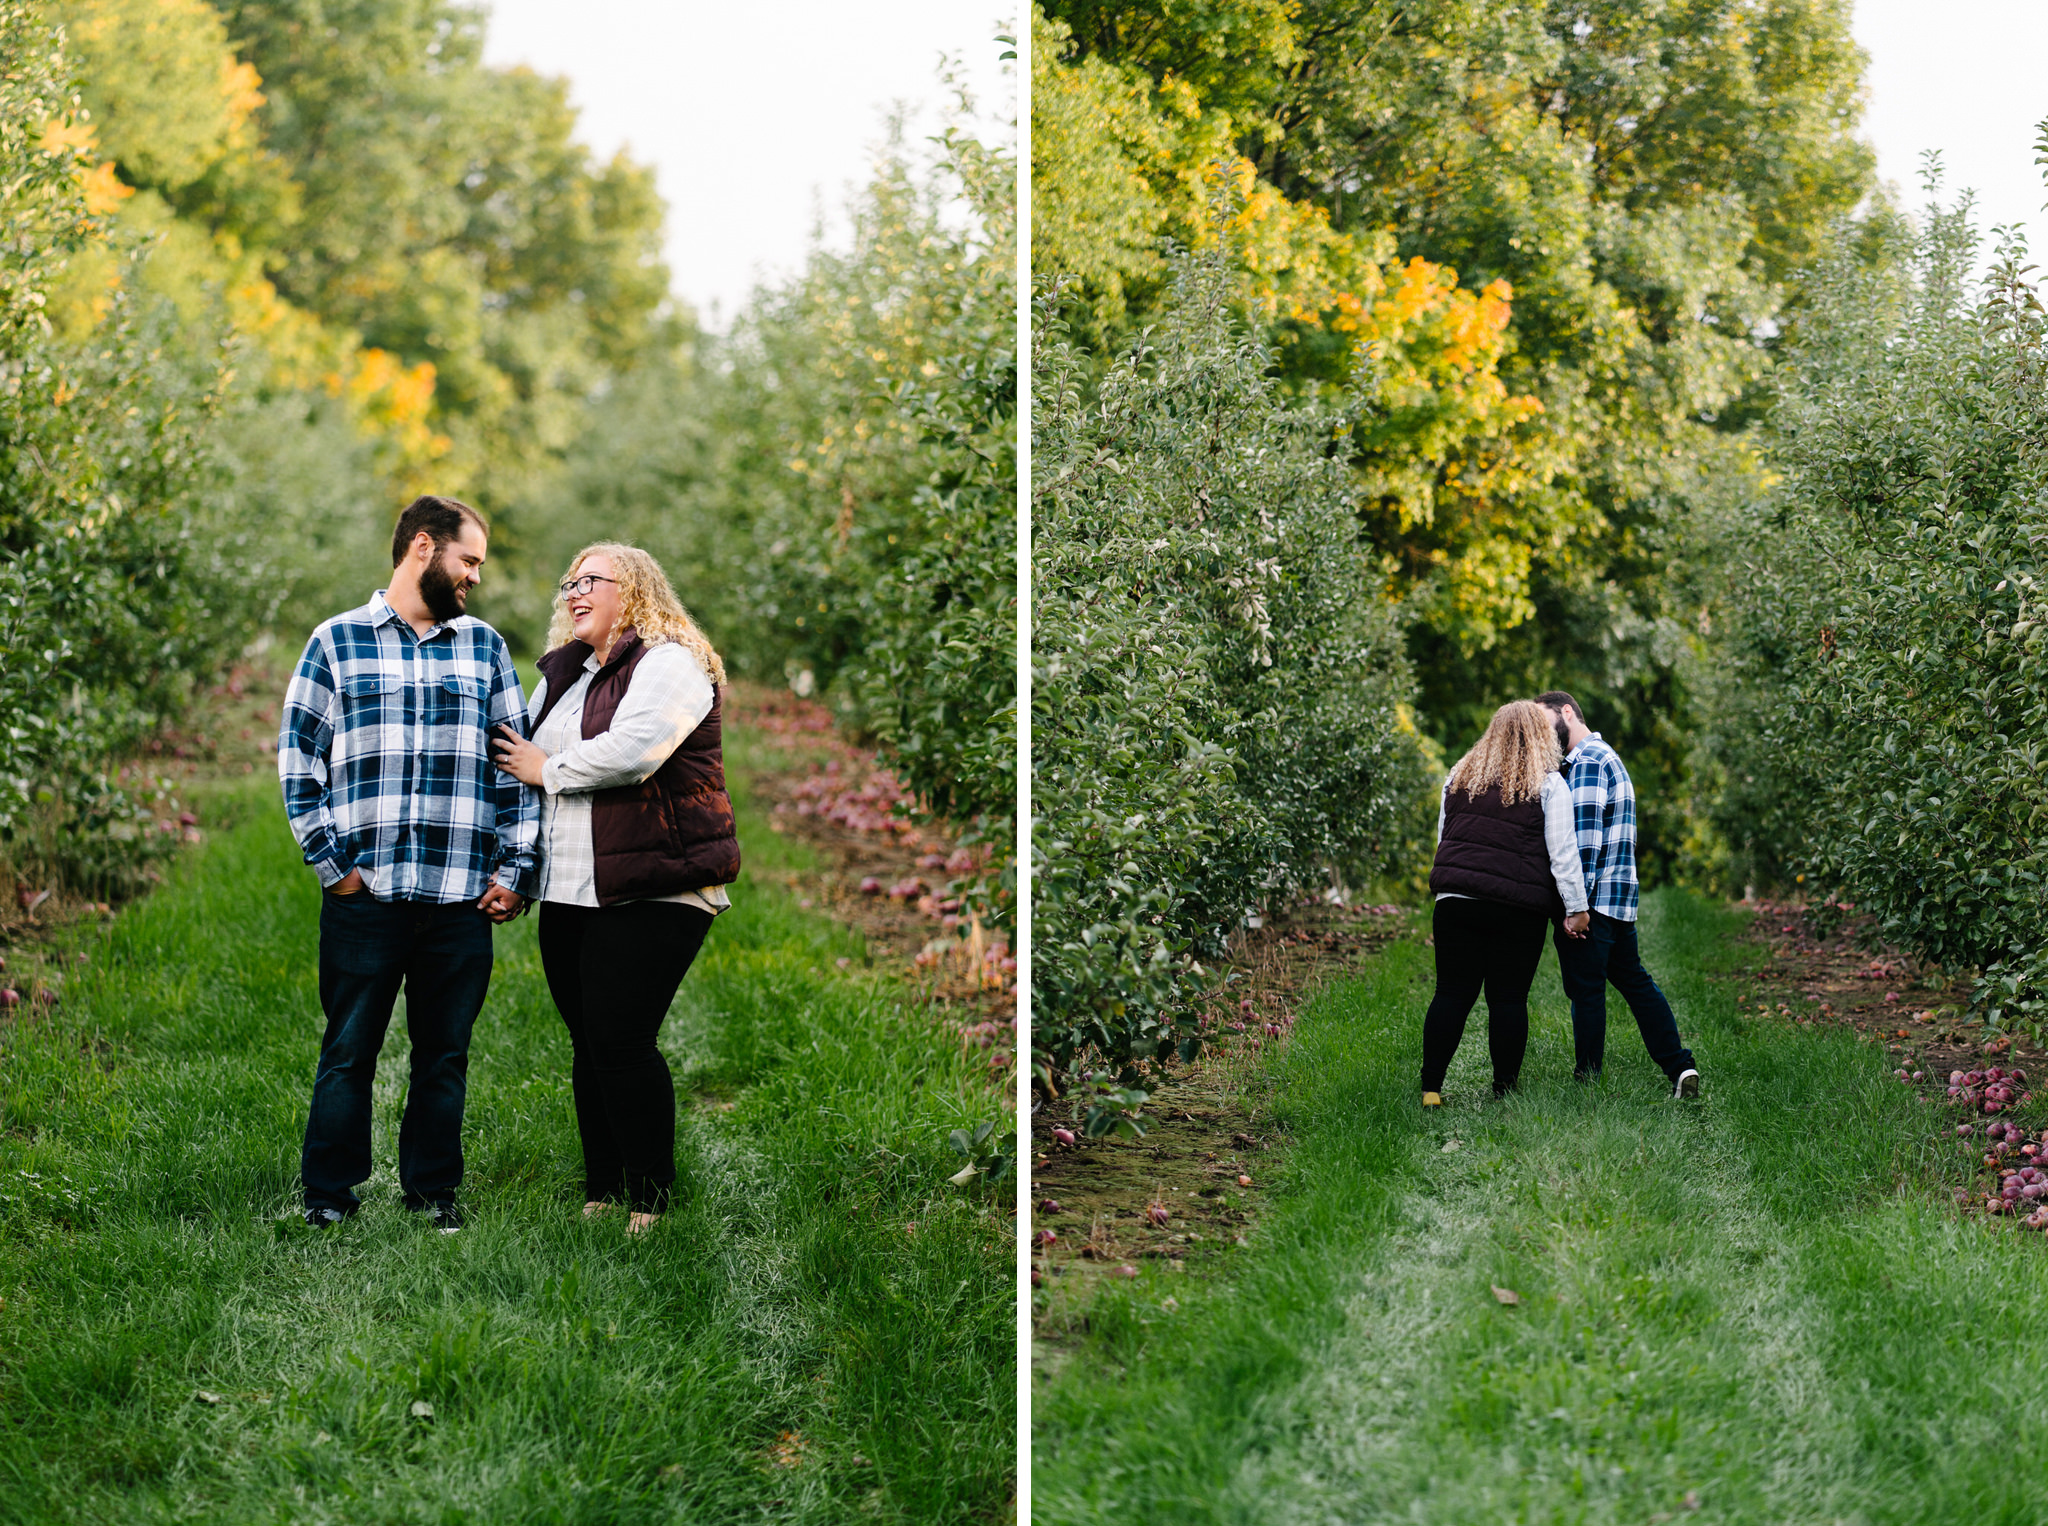 002-rempel-photography-wedding-chicago-family-oak-park-austin-brooklyn-engagement-grand-rapids-apple-orchard-robinettes.jpg